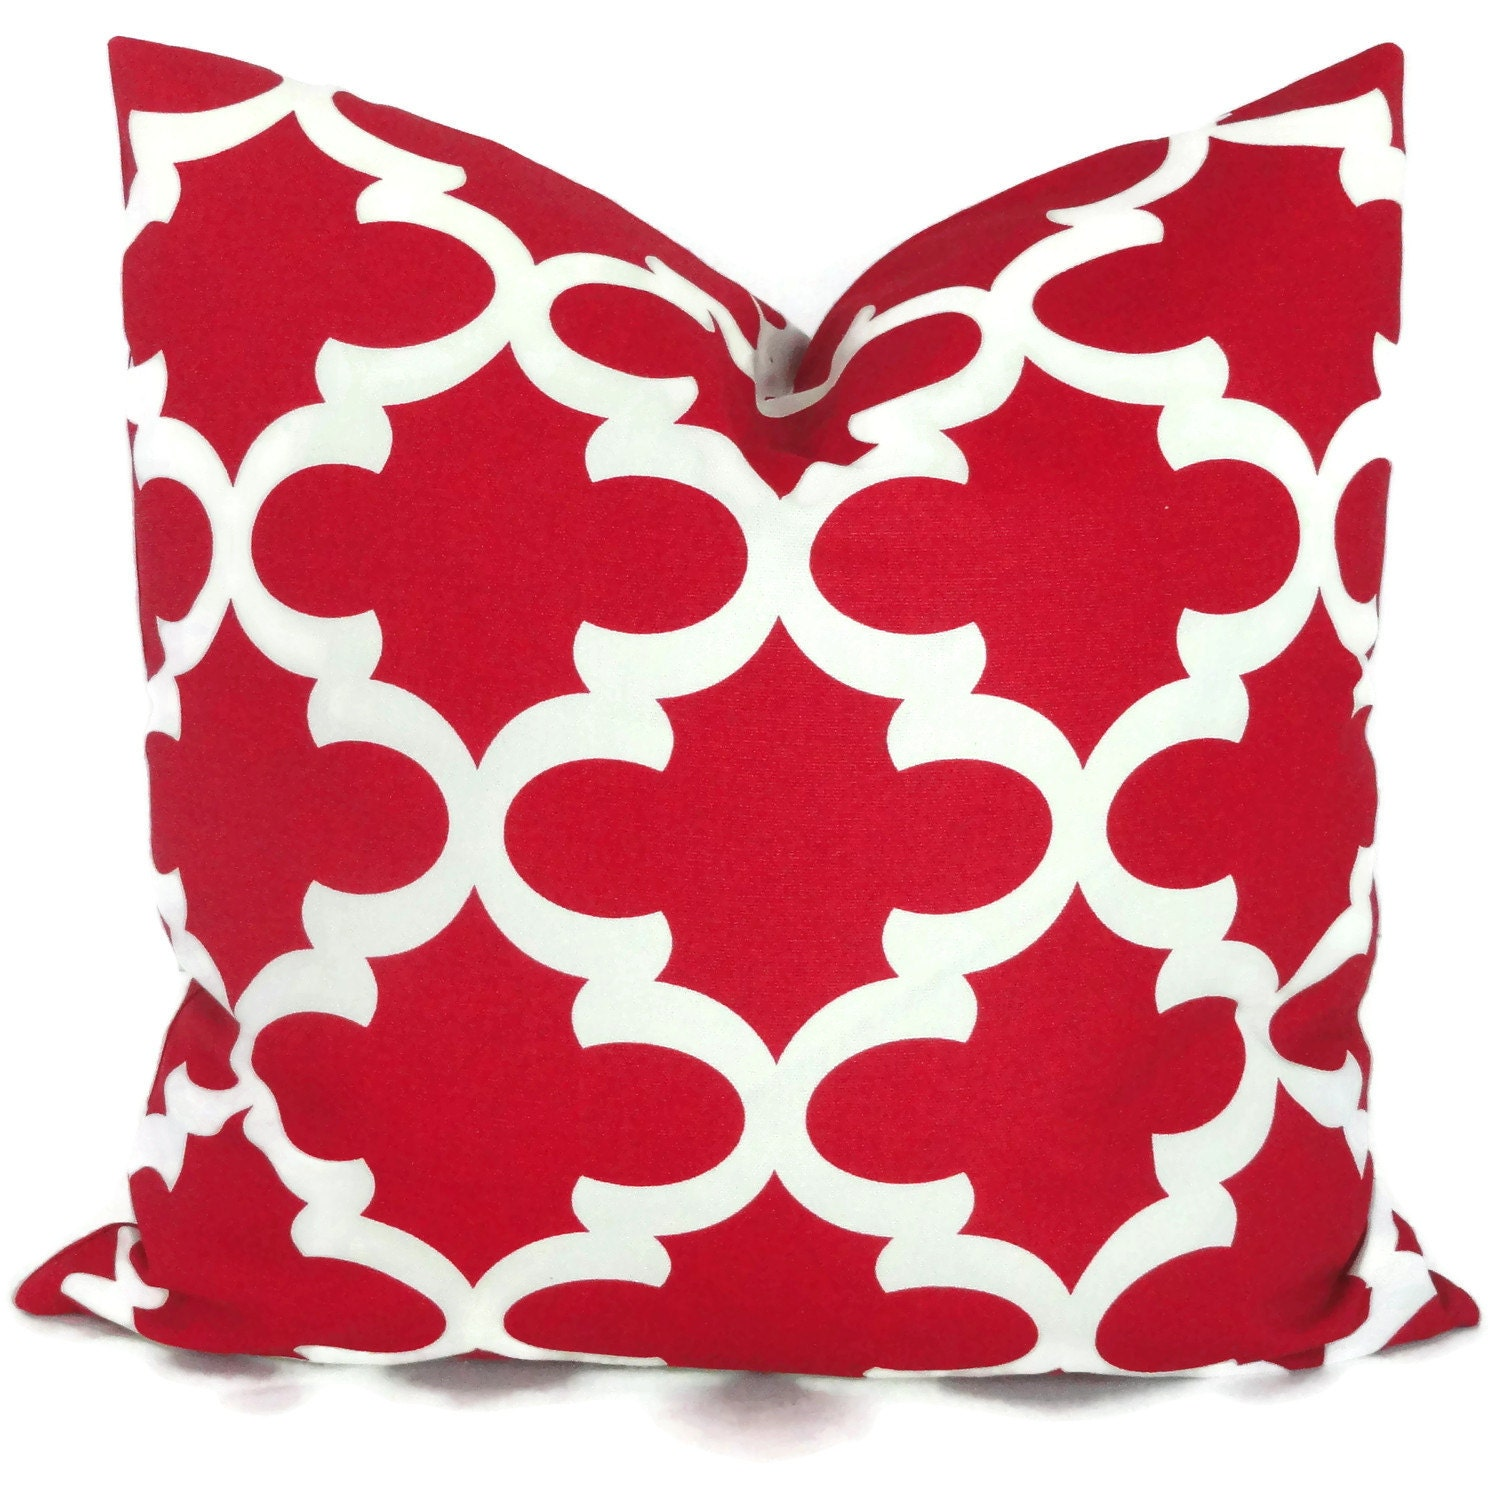 Red Quatrefoil Trellis Decorative Pillow Cover 18x18 20x20